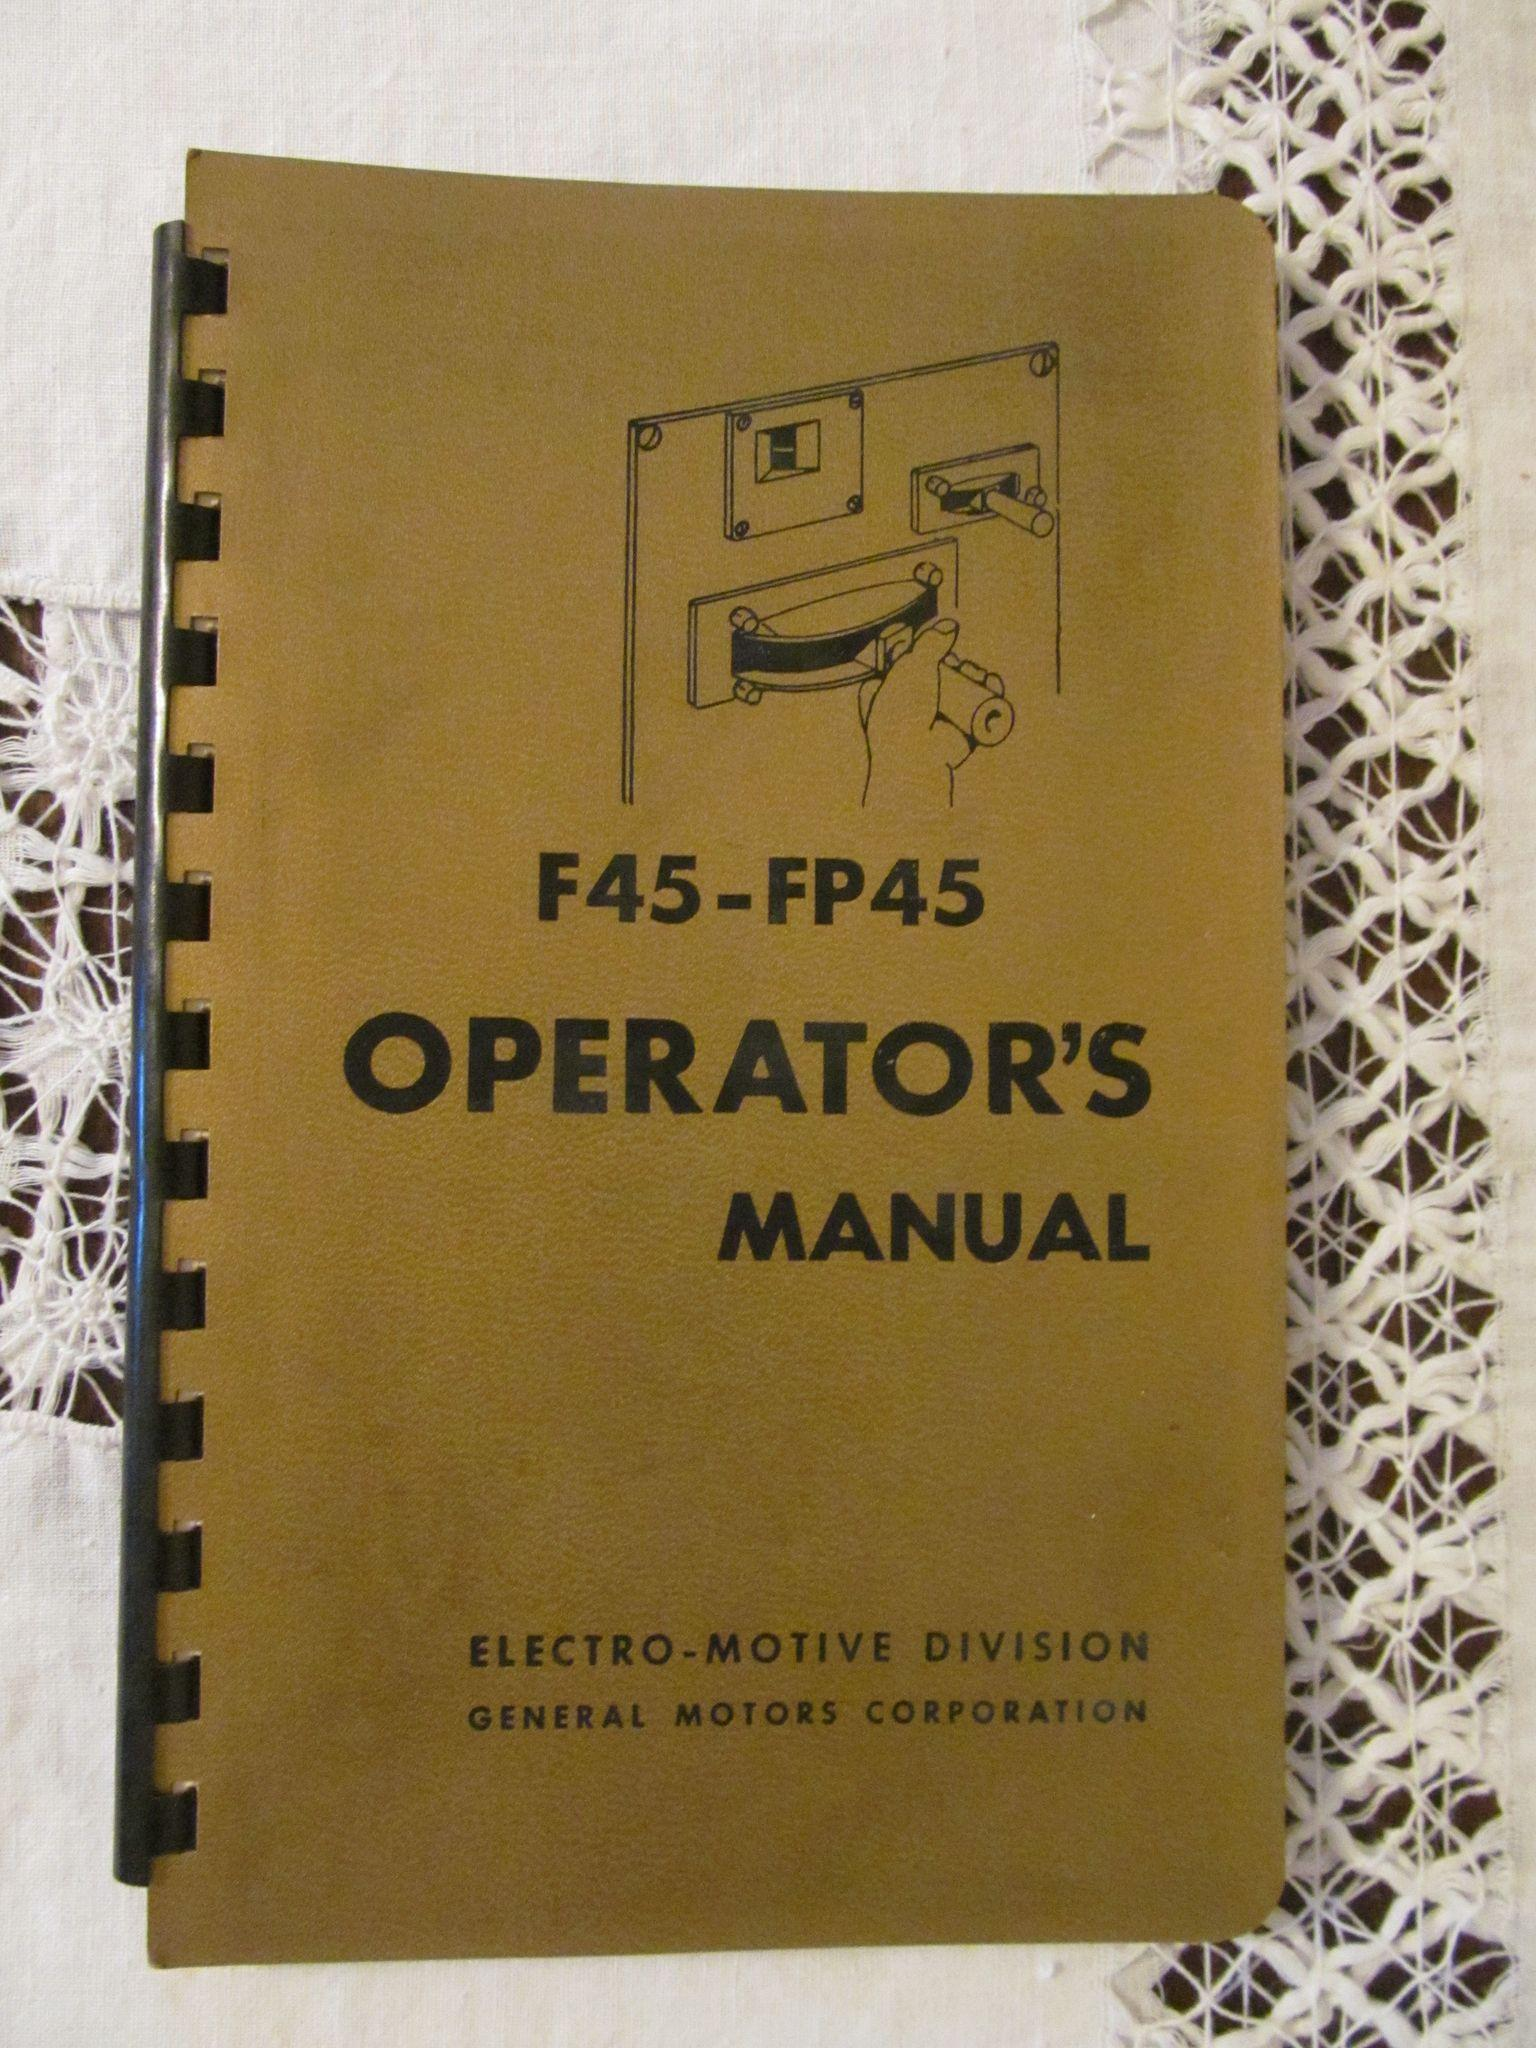 1968 EMD F45 - FP45 Diesel Locomotive Operators Manual, General Motors